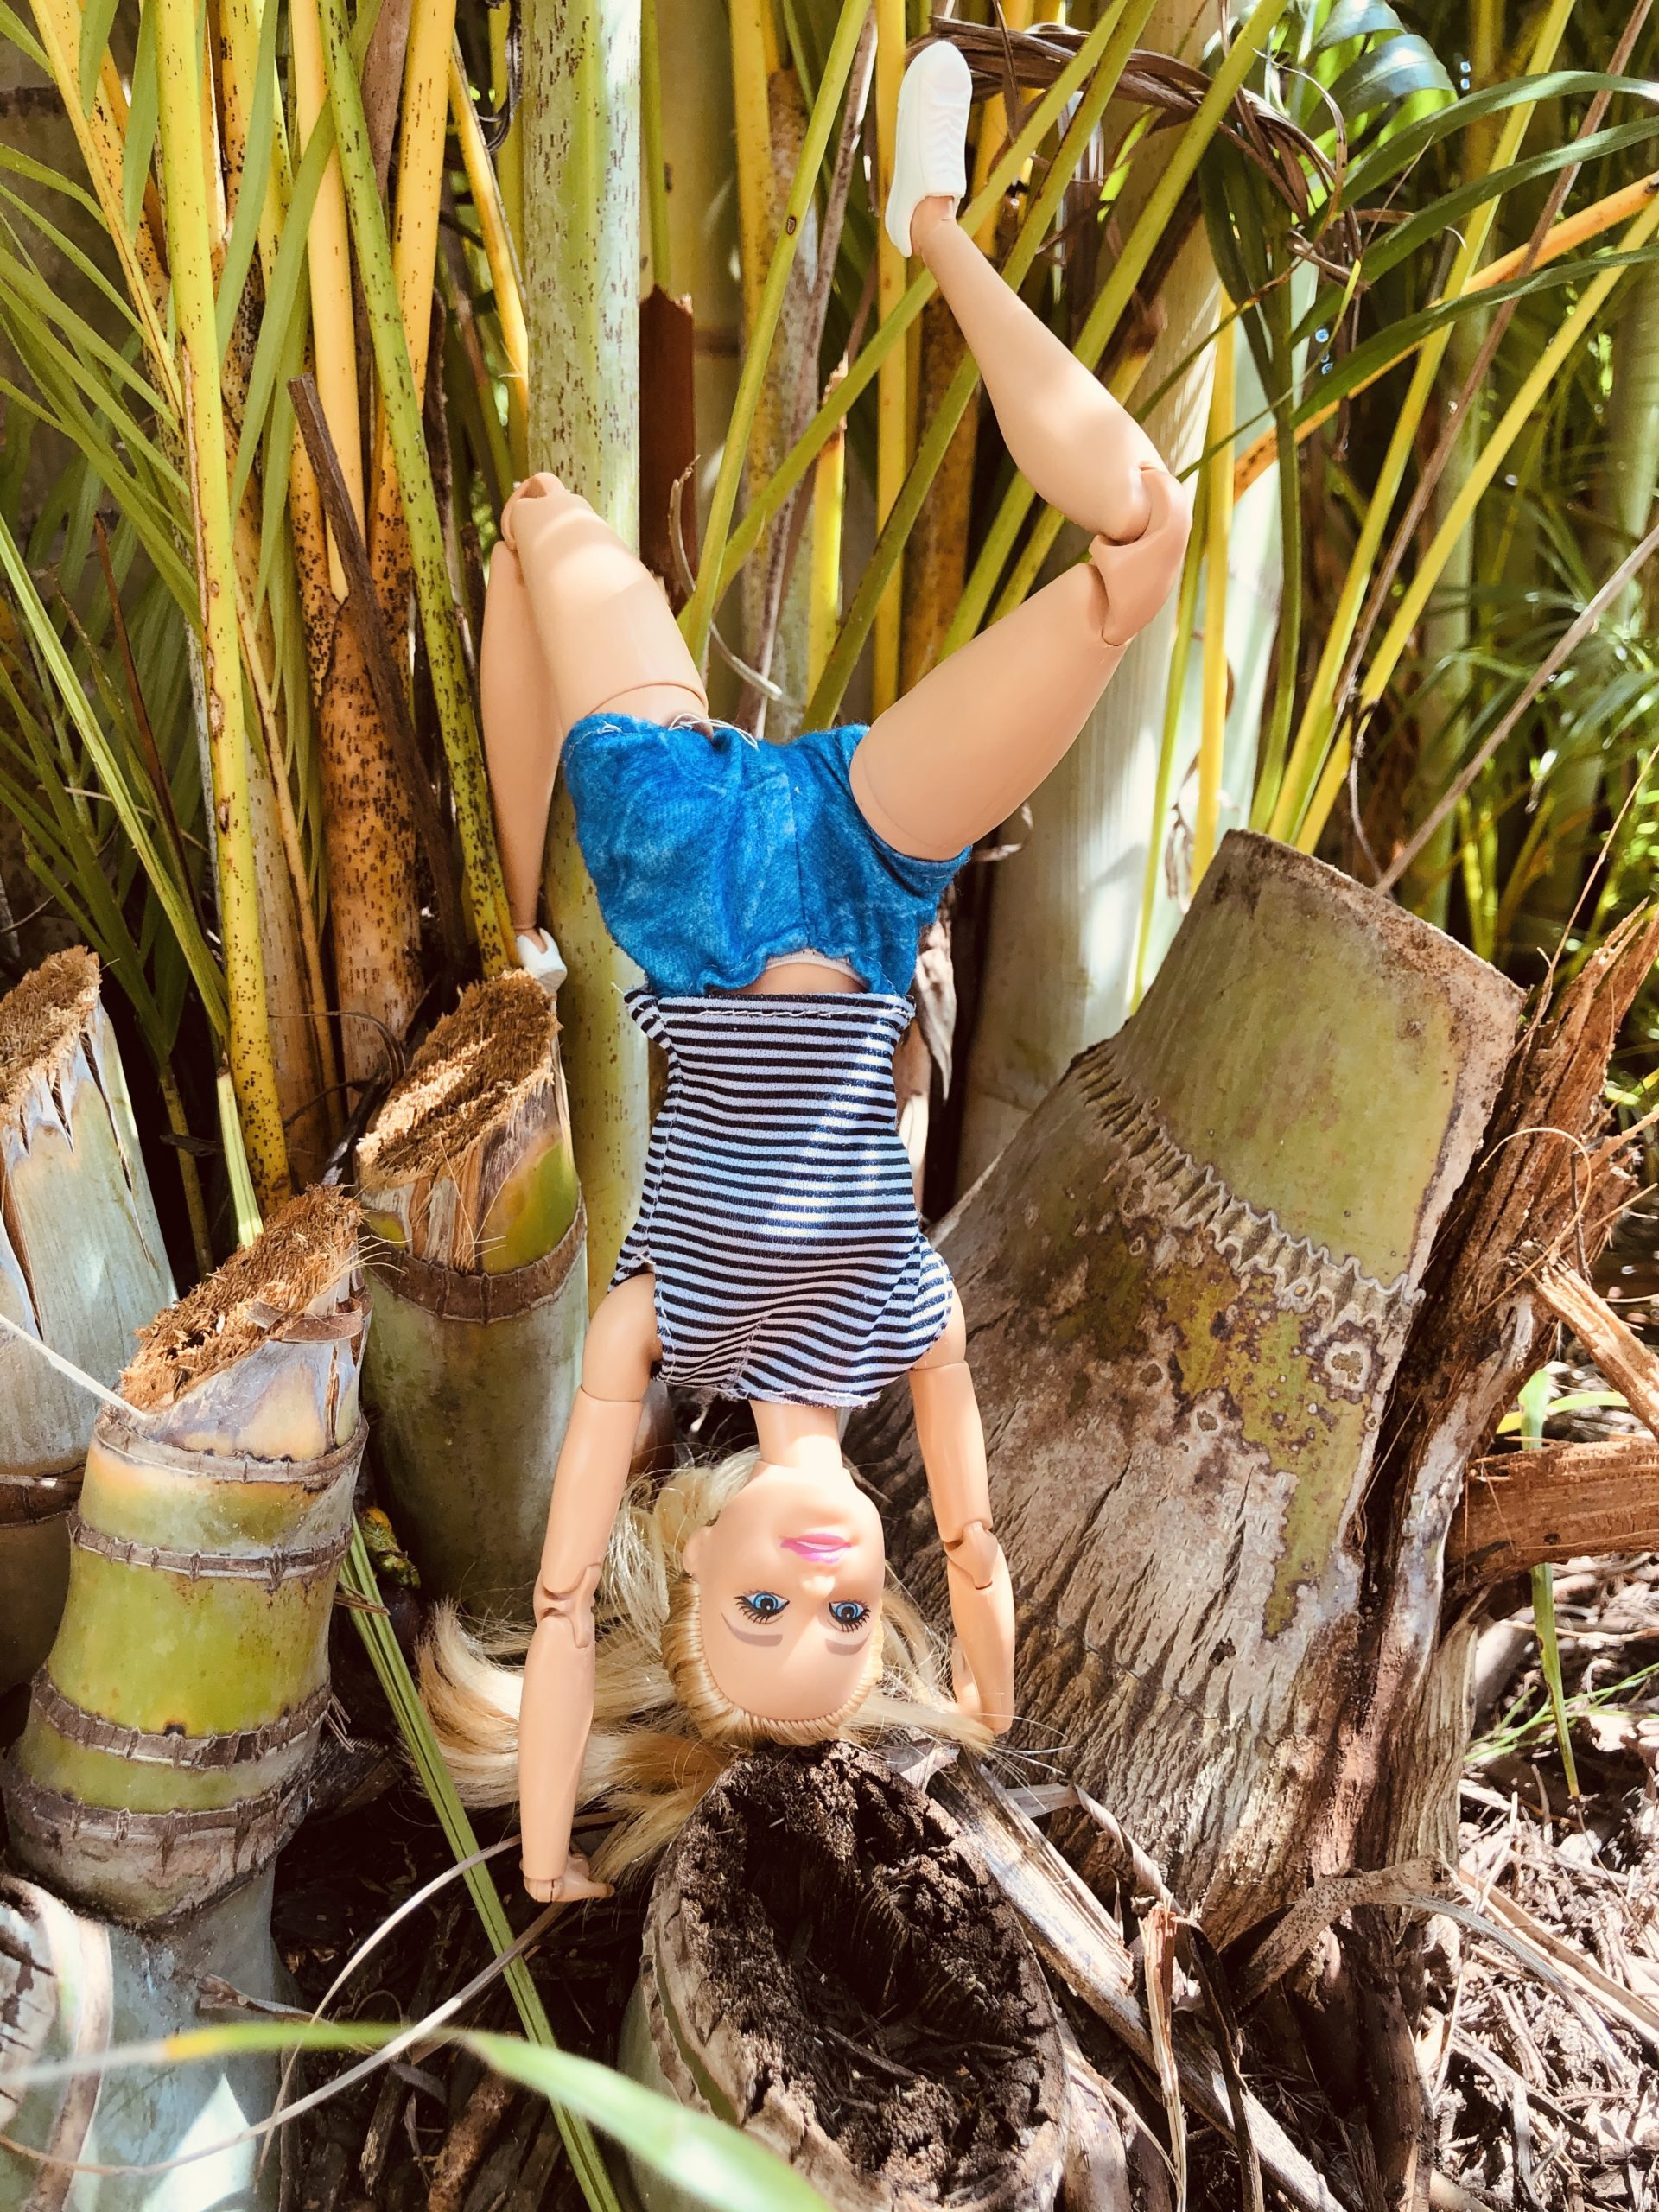 A Barbie, with blue shorts and a blue and white striped shirt, standing on her head in the Barbie Story for kids, Hiking in Costa Rica.